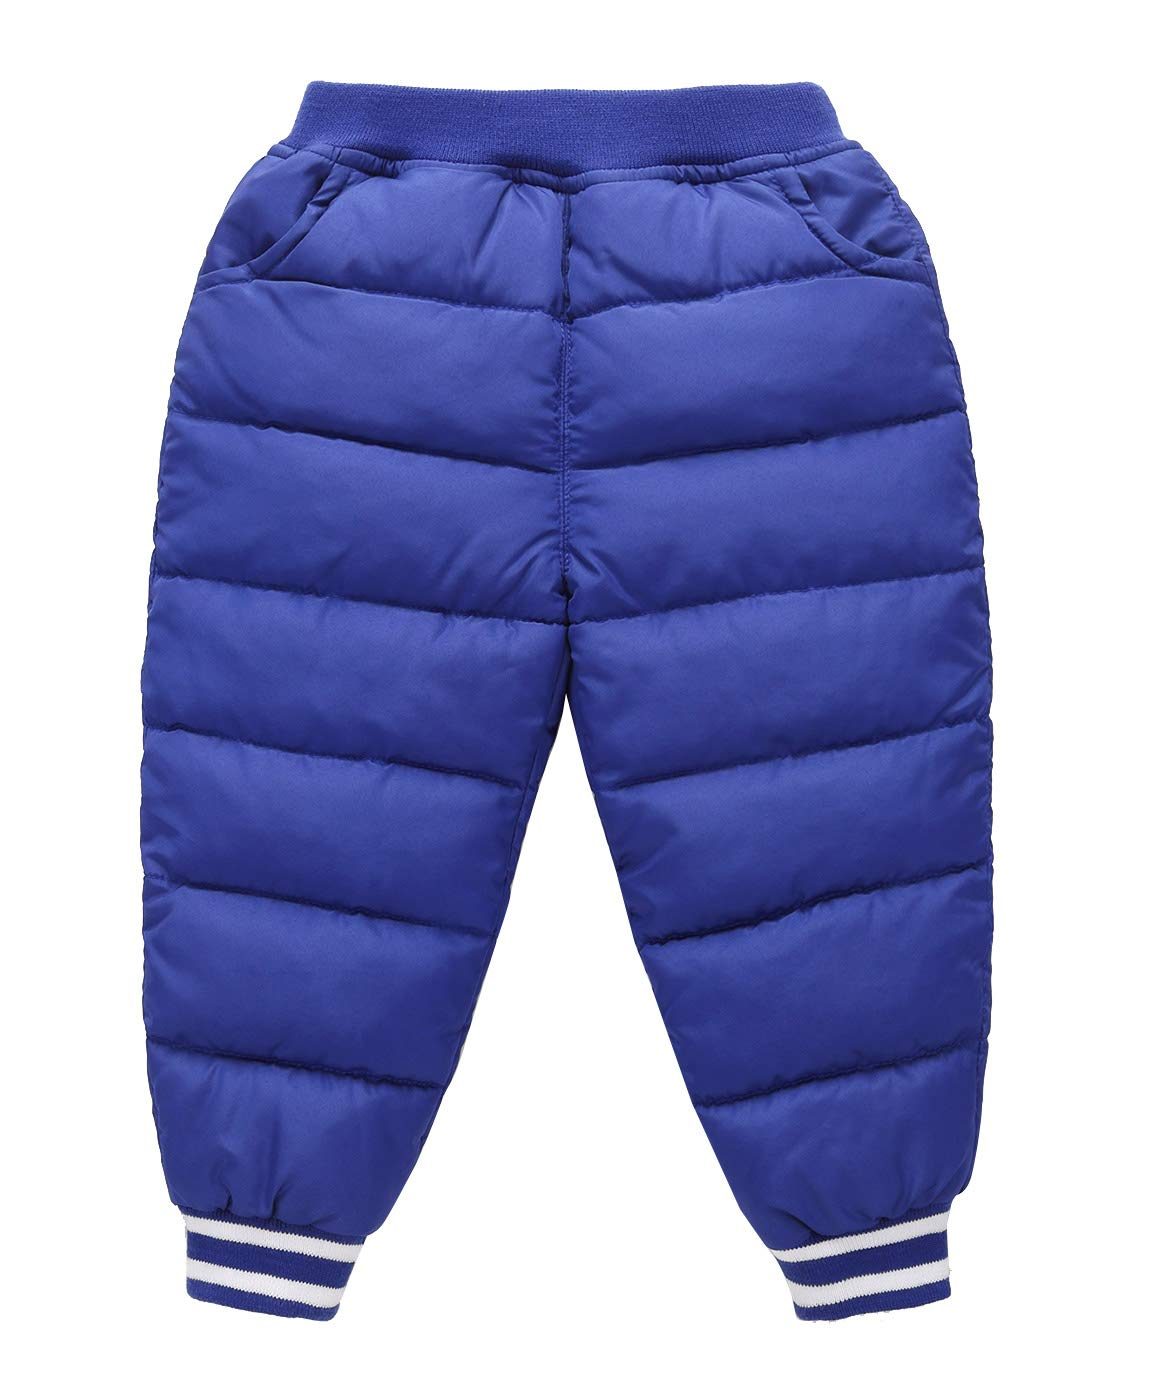 Boys Full Length Pants Ankle Length Lightweight Soft Down Pants Casual Trousers Black for 4-5T